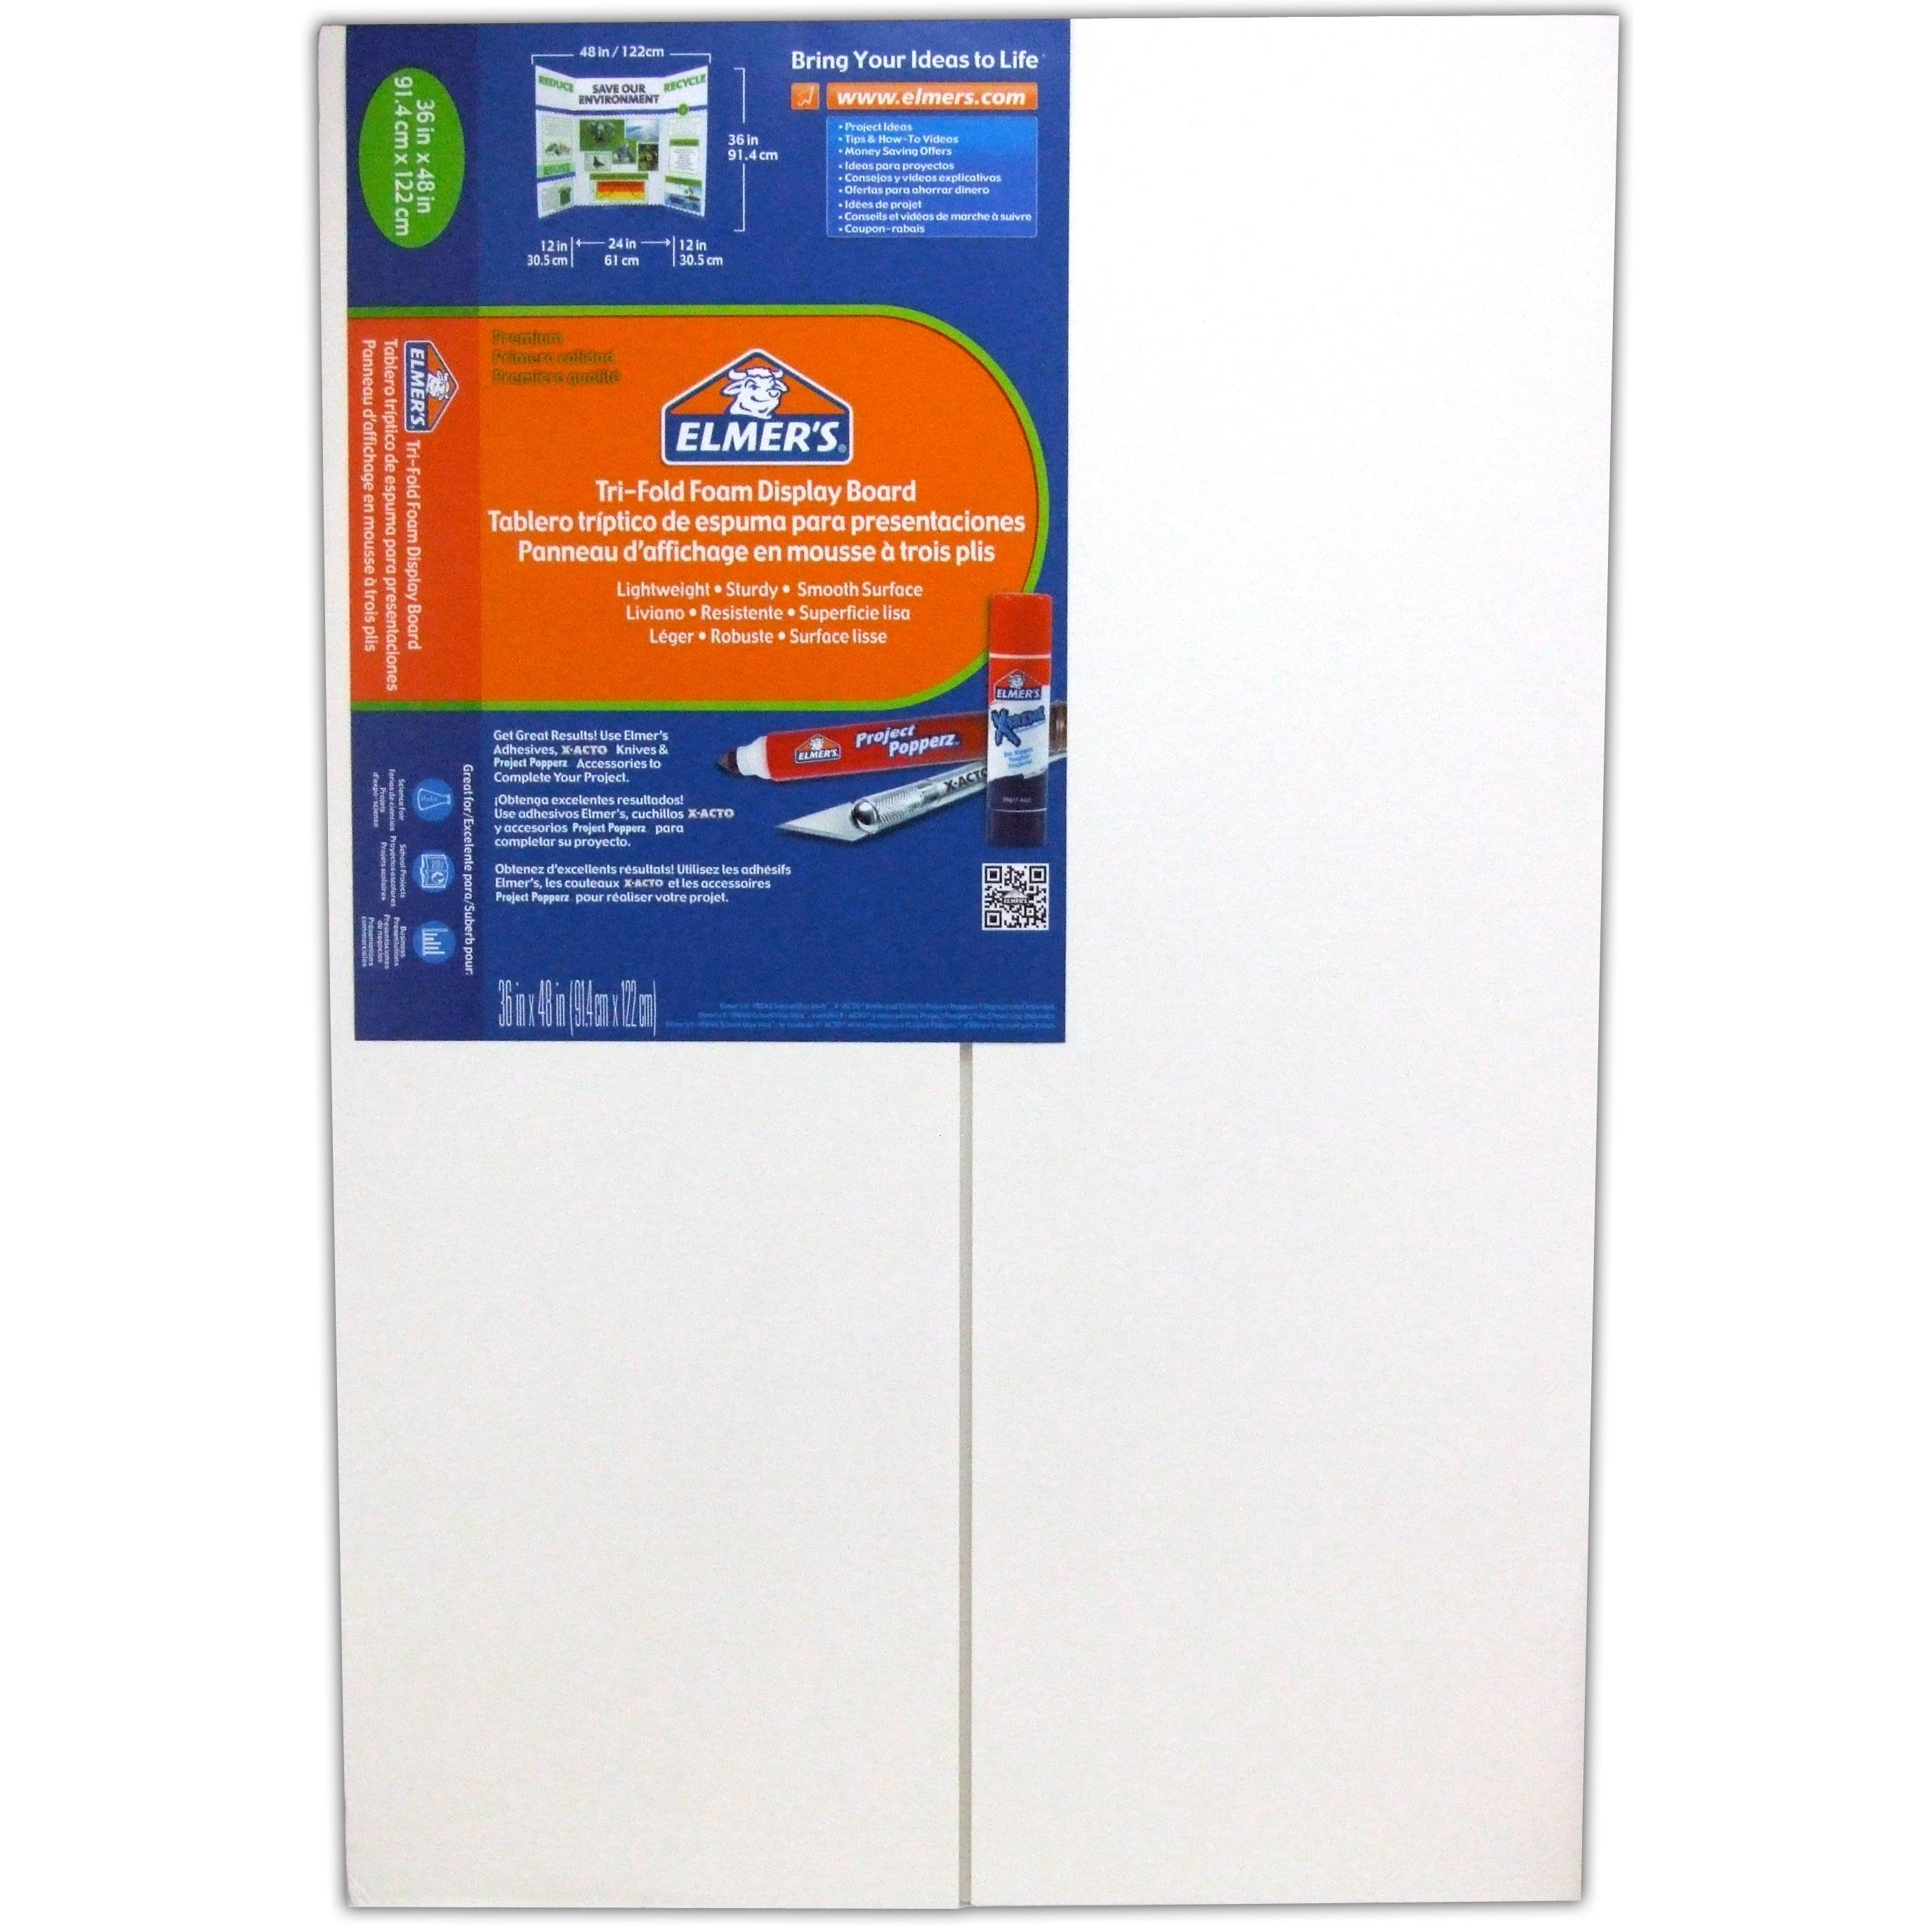 two three fold boards Elmer's project display board, white, 36 x 48 item : epi730205 / model : epi730205 (1) add to favorites tri-fold project display board makes displaying graphics and information easy and neat ideal for school or business presentations, project displays, science fairs and more offers heavy-duty, two-ply , corrugated core.